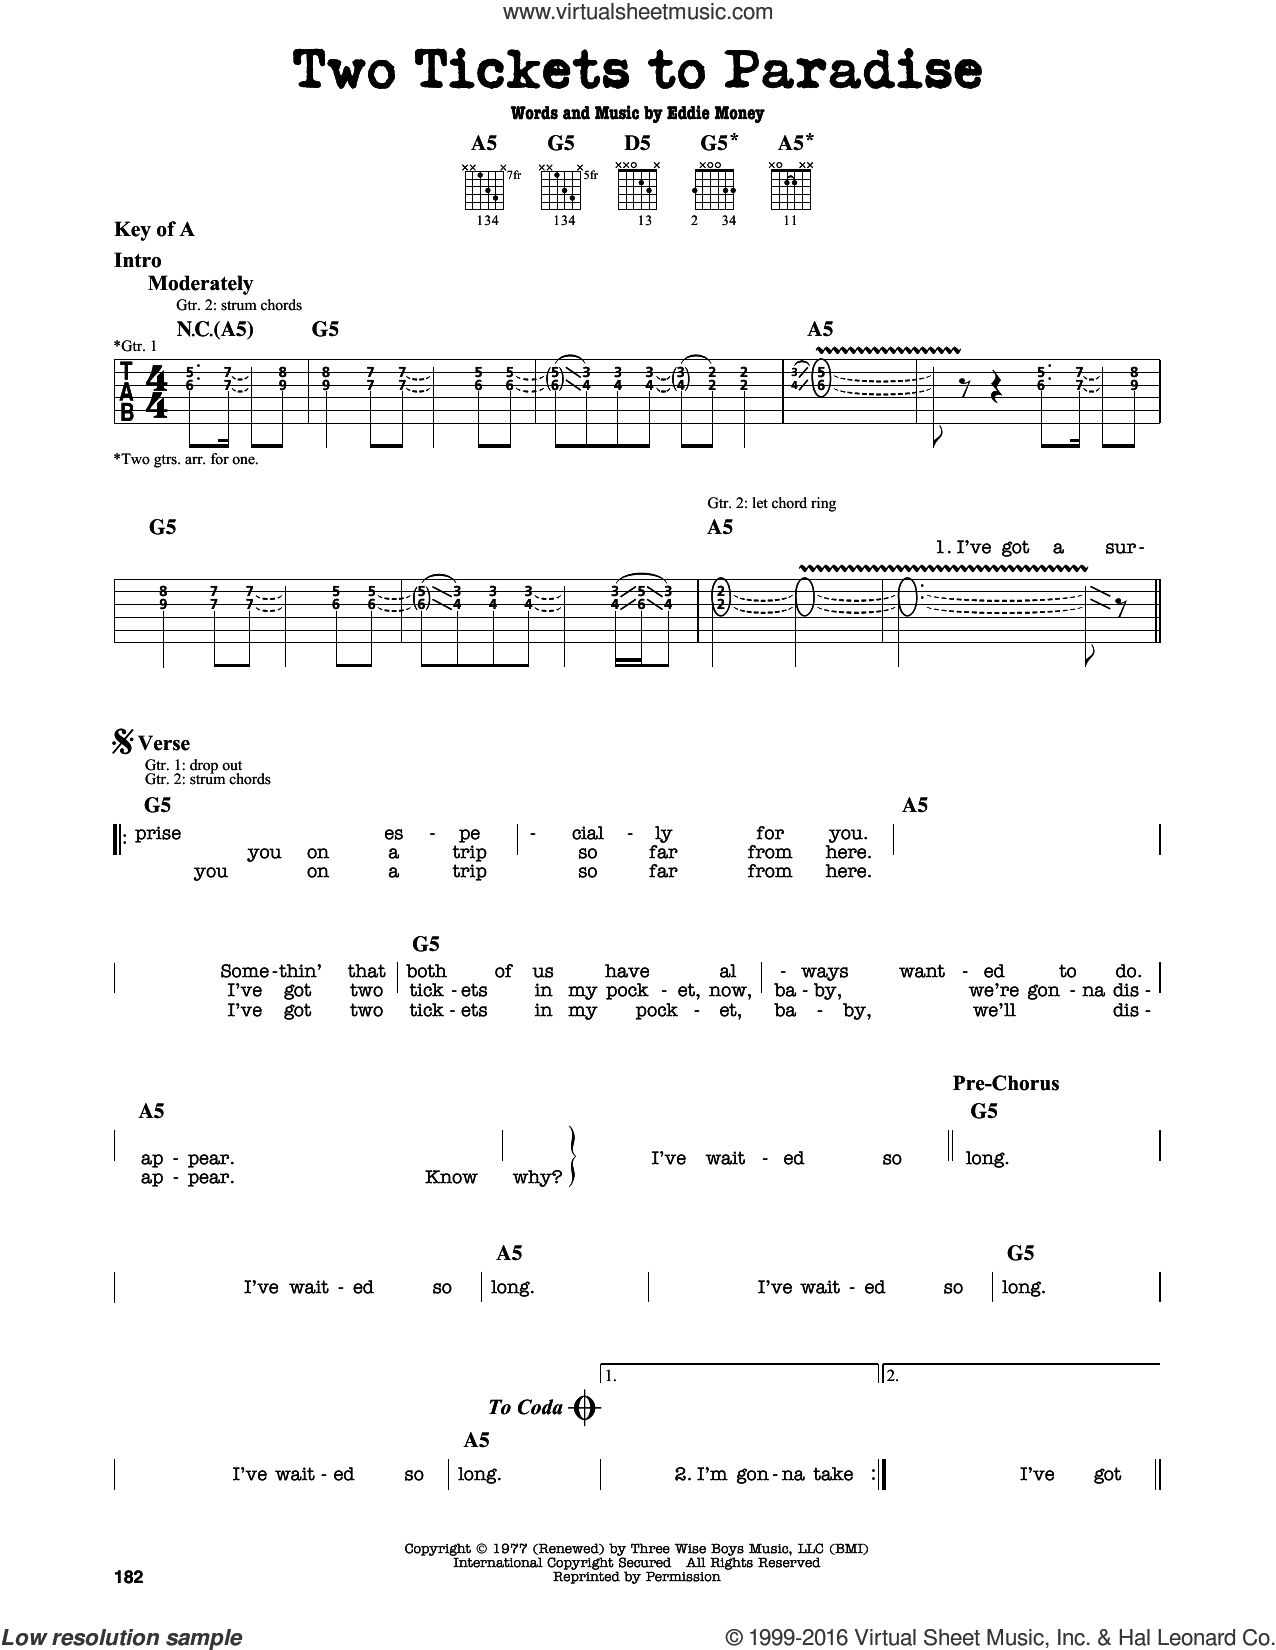 Two Tickets To Paradise sheet music for guitar solo (lead sheet) by Eddie Money, intermediate guitar (lead sheet). Score Image Preview.